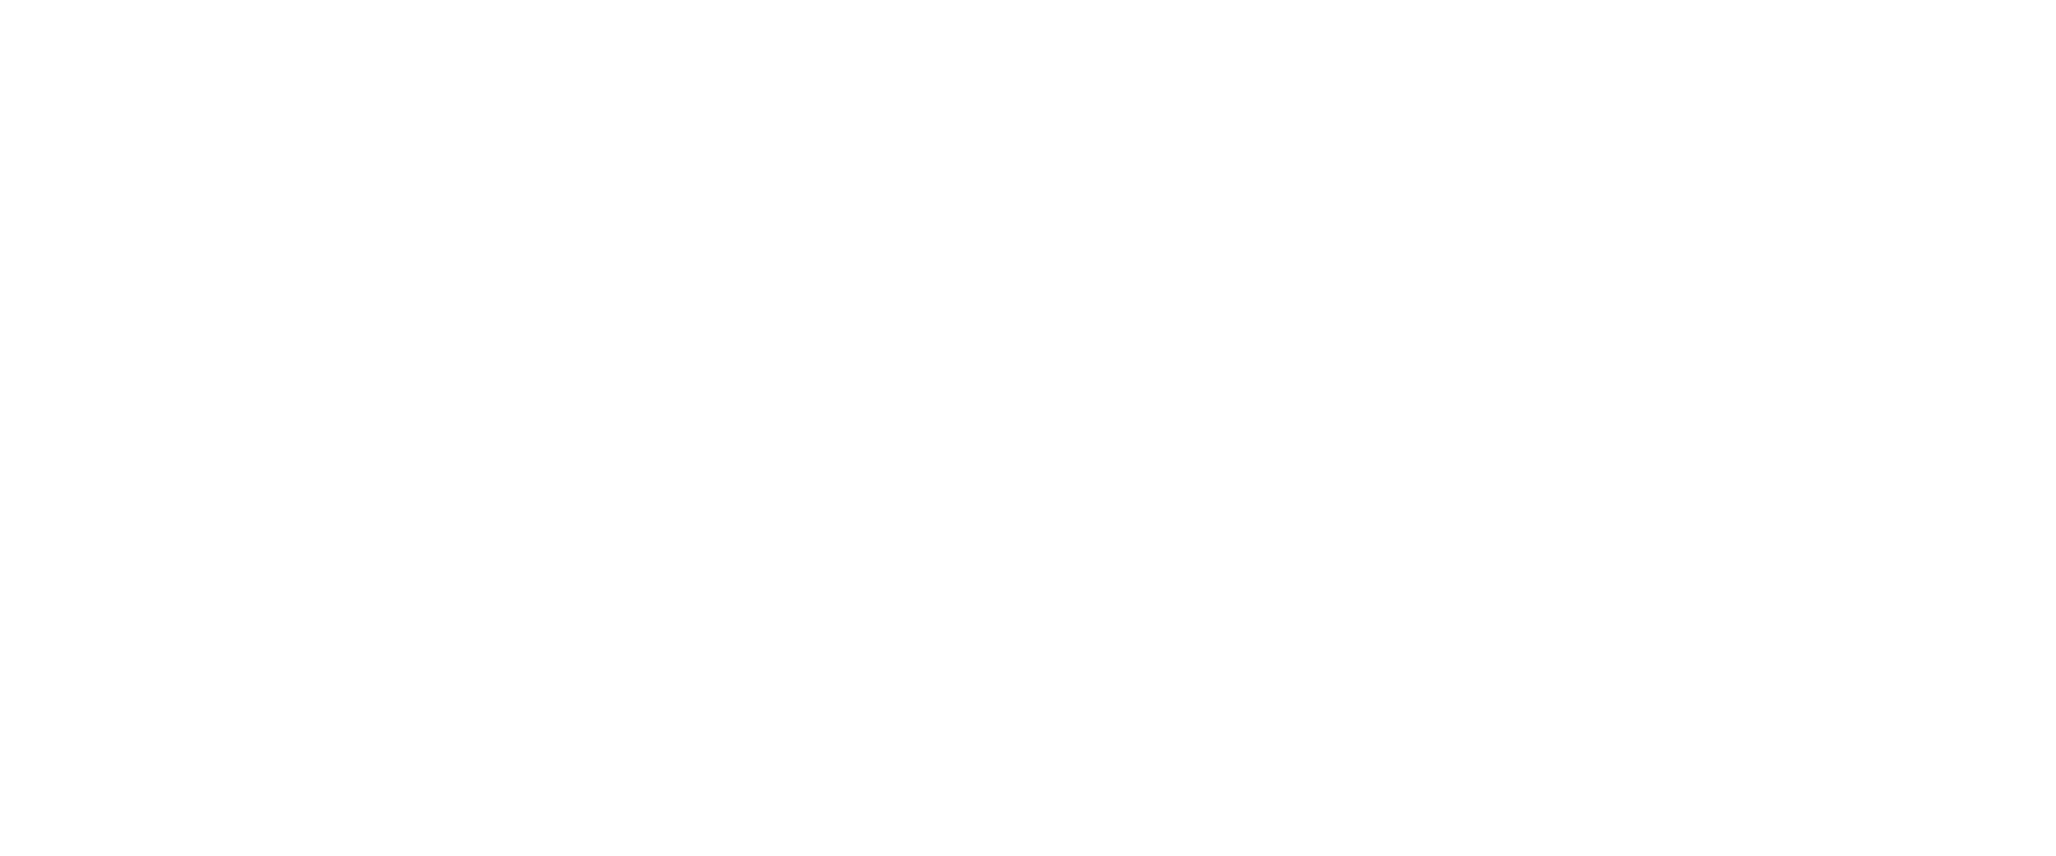 https://byronwritersfestival.com/wp-content/uploads/2016/04/ArtsNSW_website_logo.png